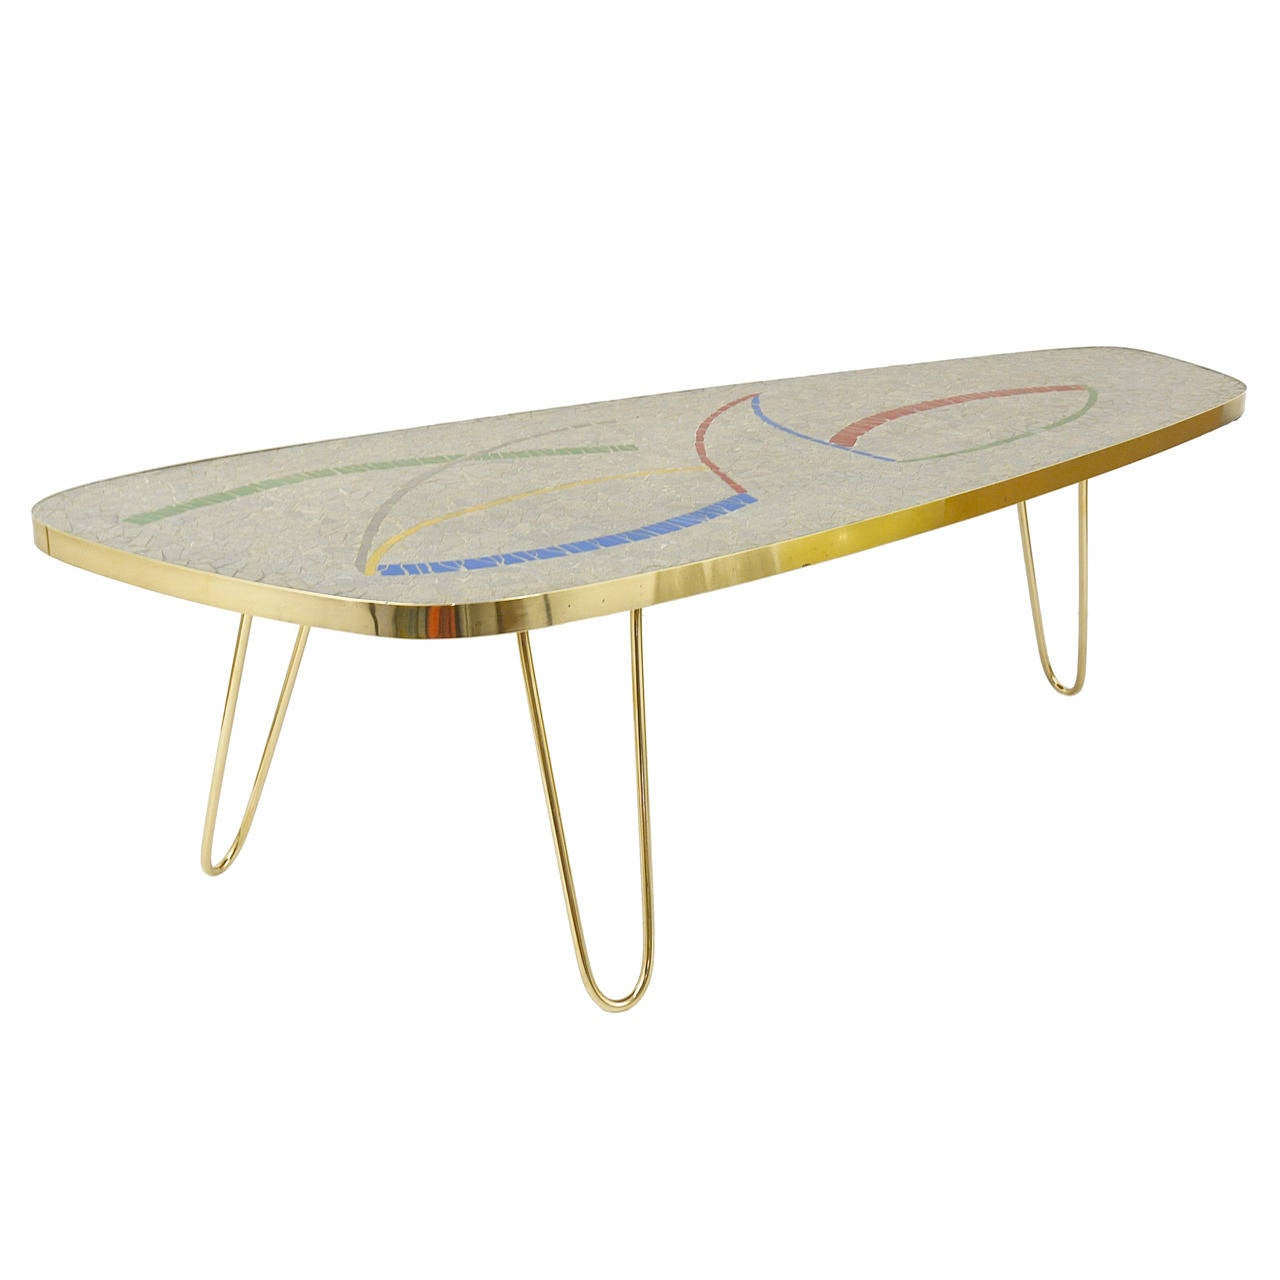 Italian Mid Century Mosaic Tile Coffee Table With Brass Legs, 1950s 1